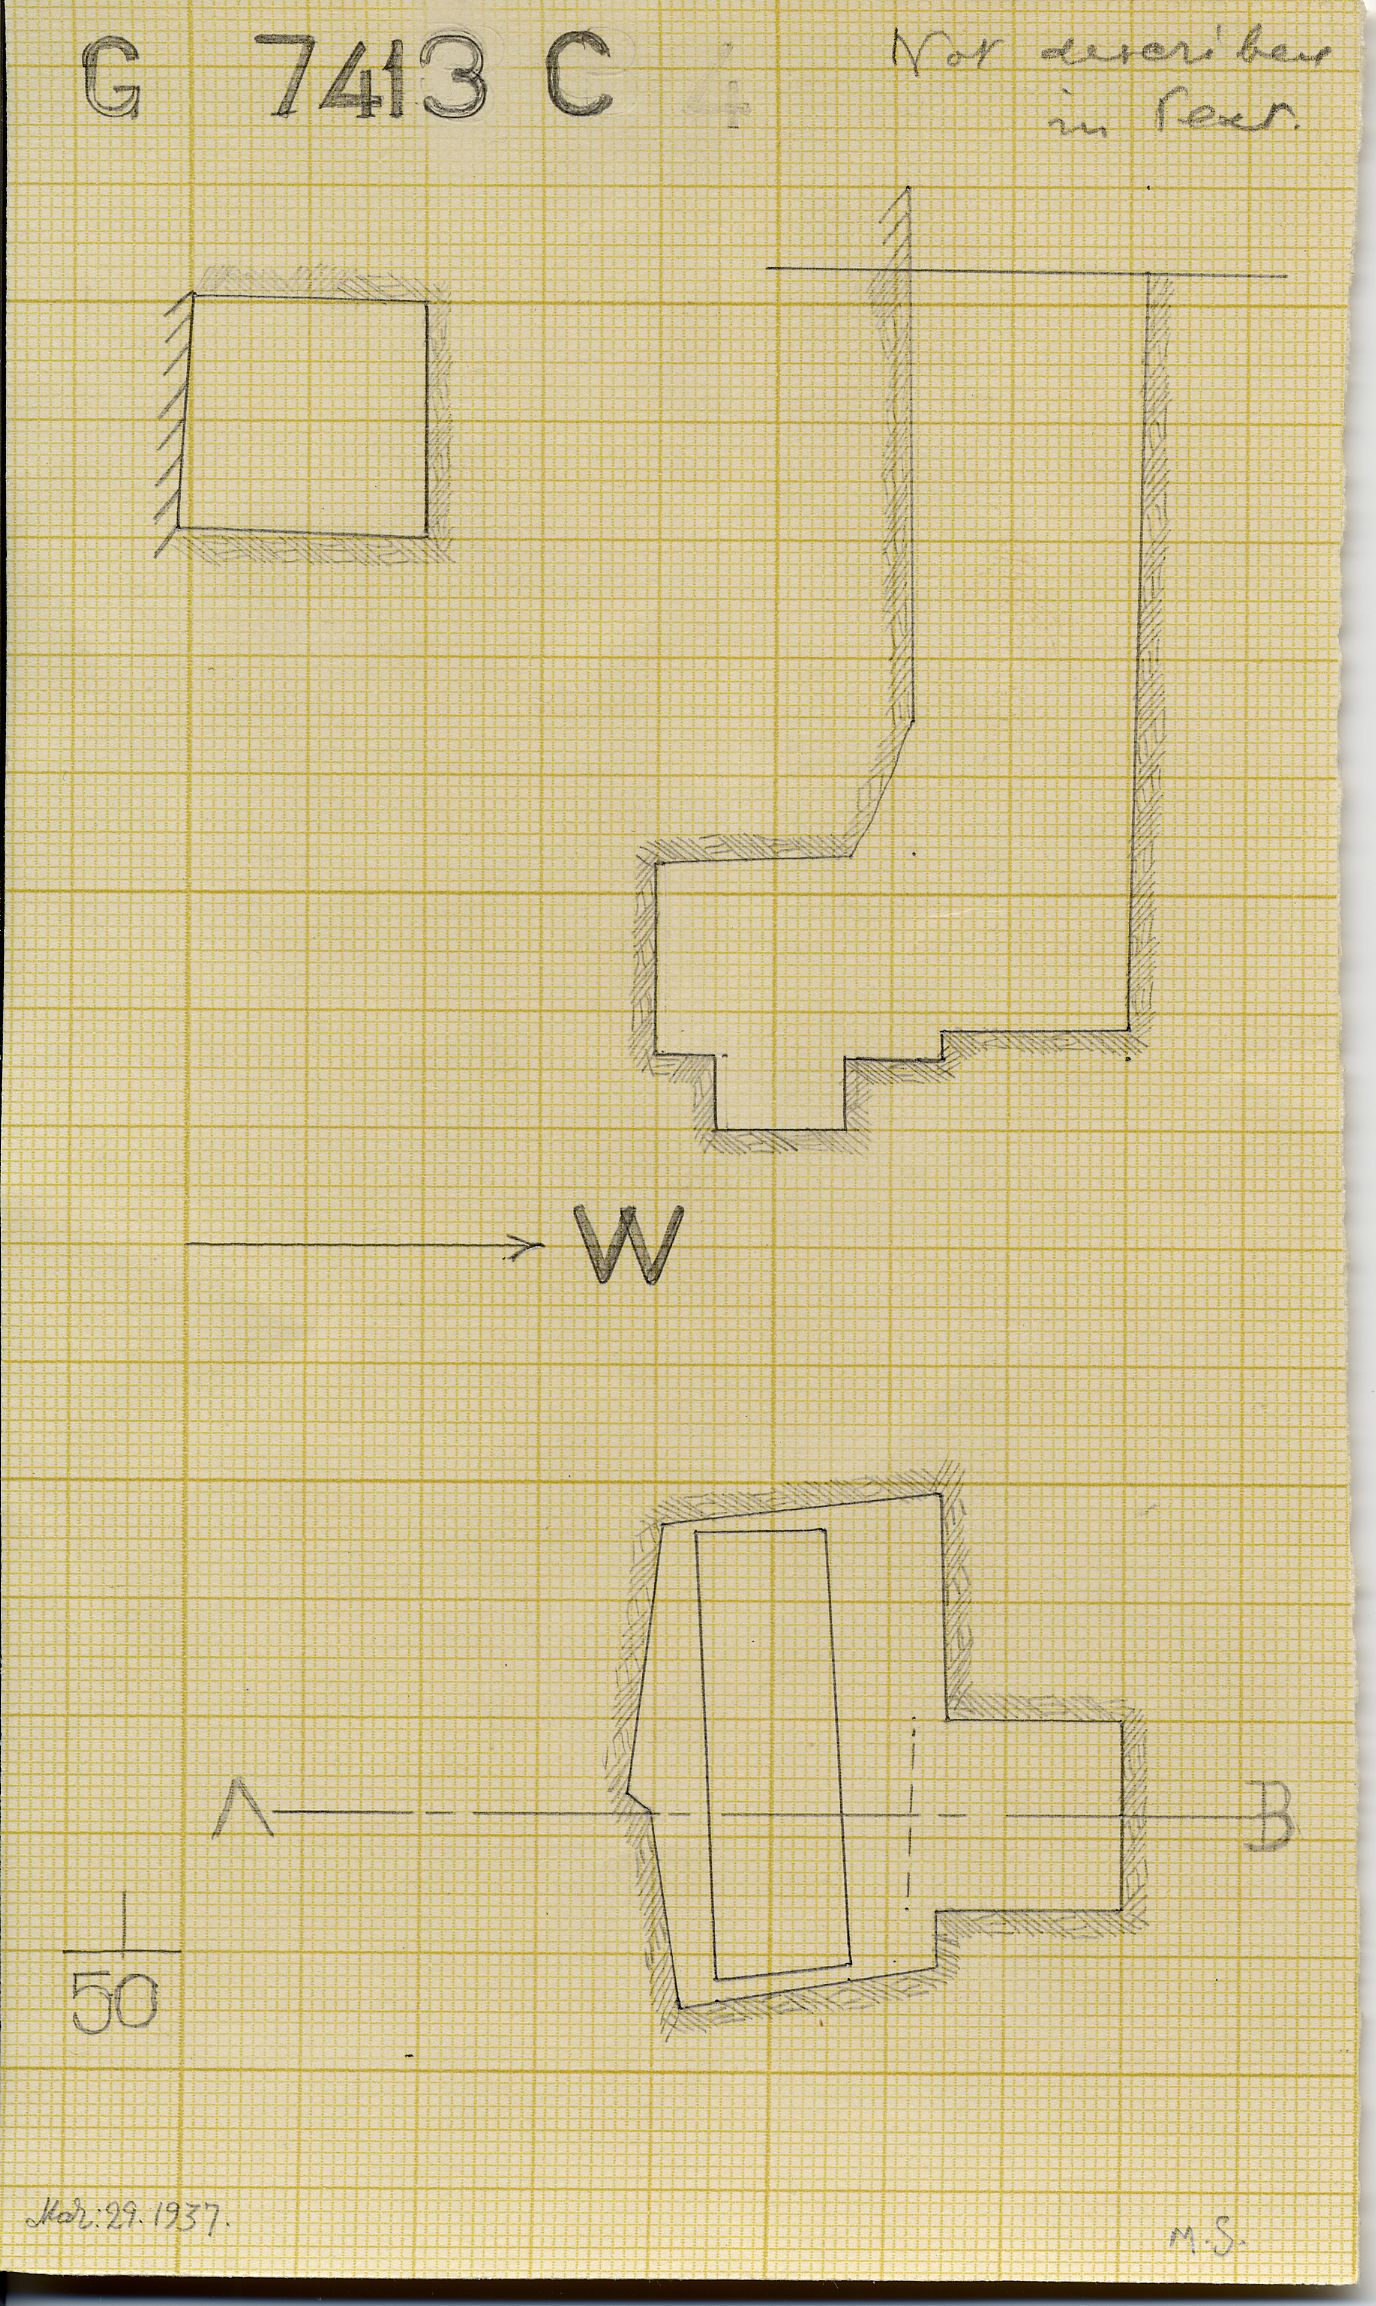 Maps and plans: G 7413, Shaft C